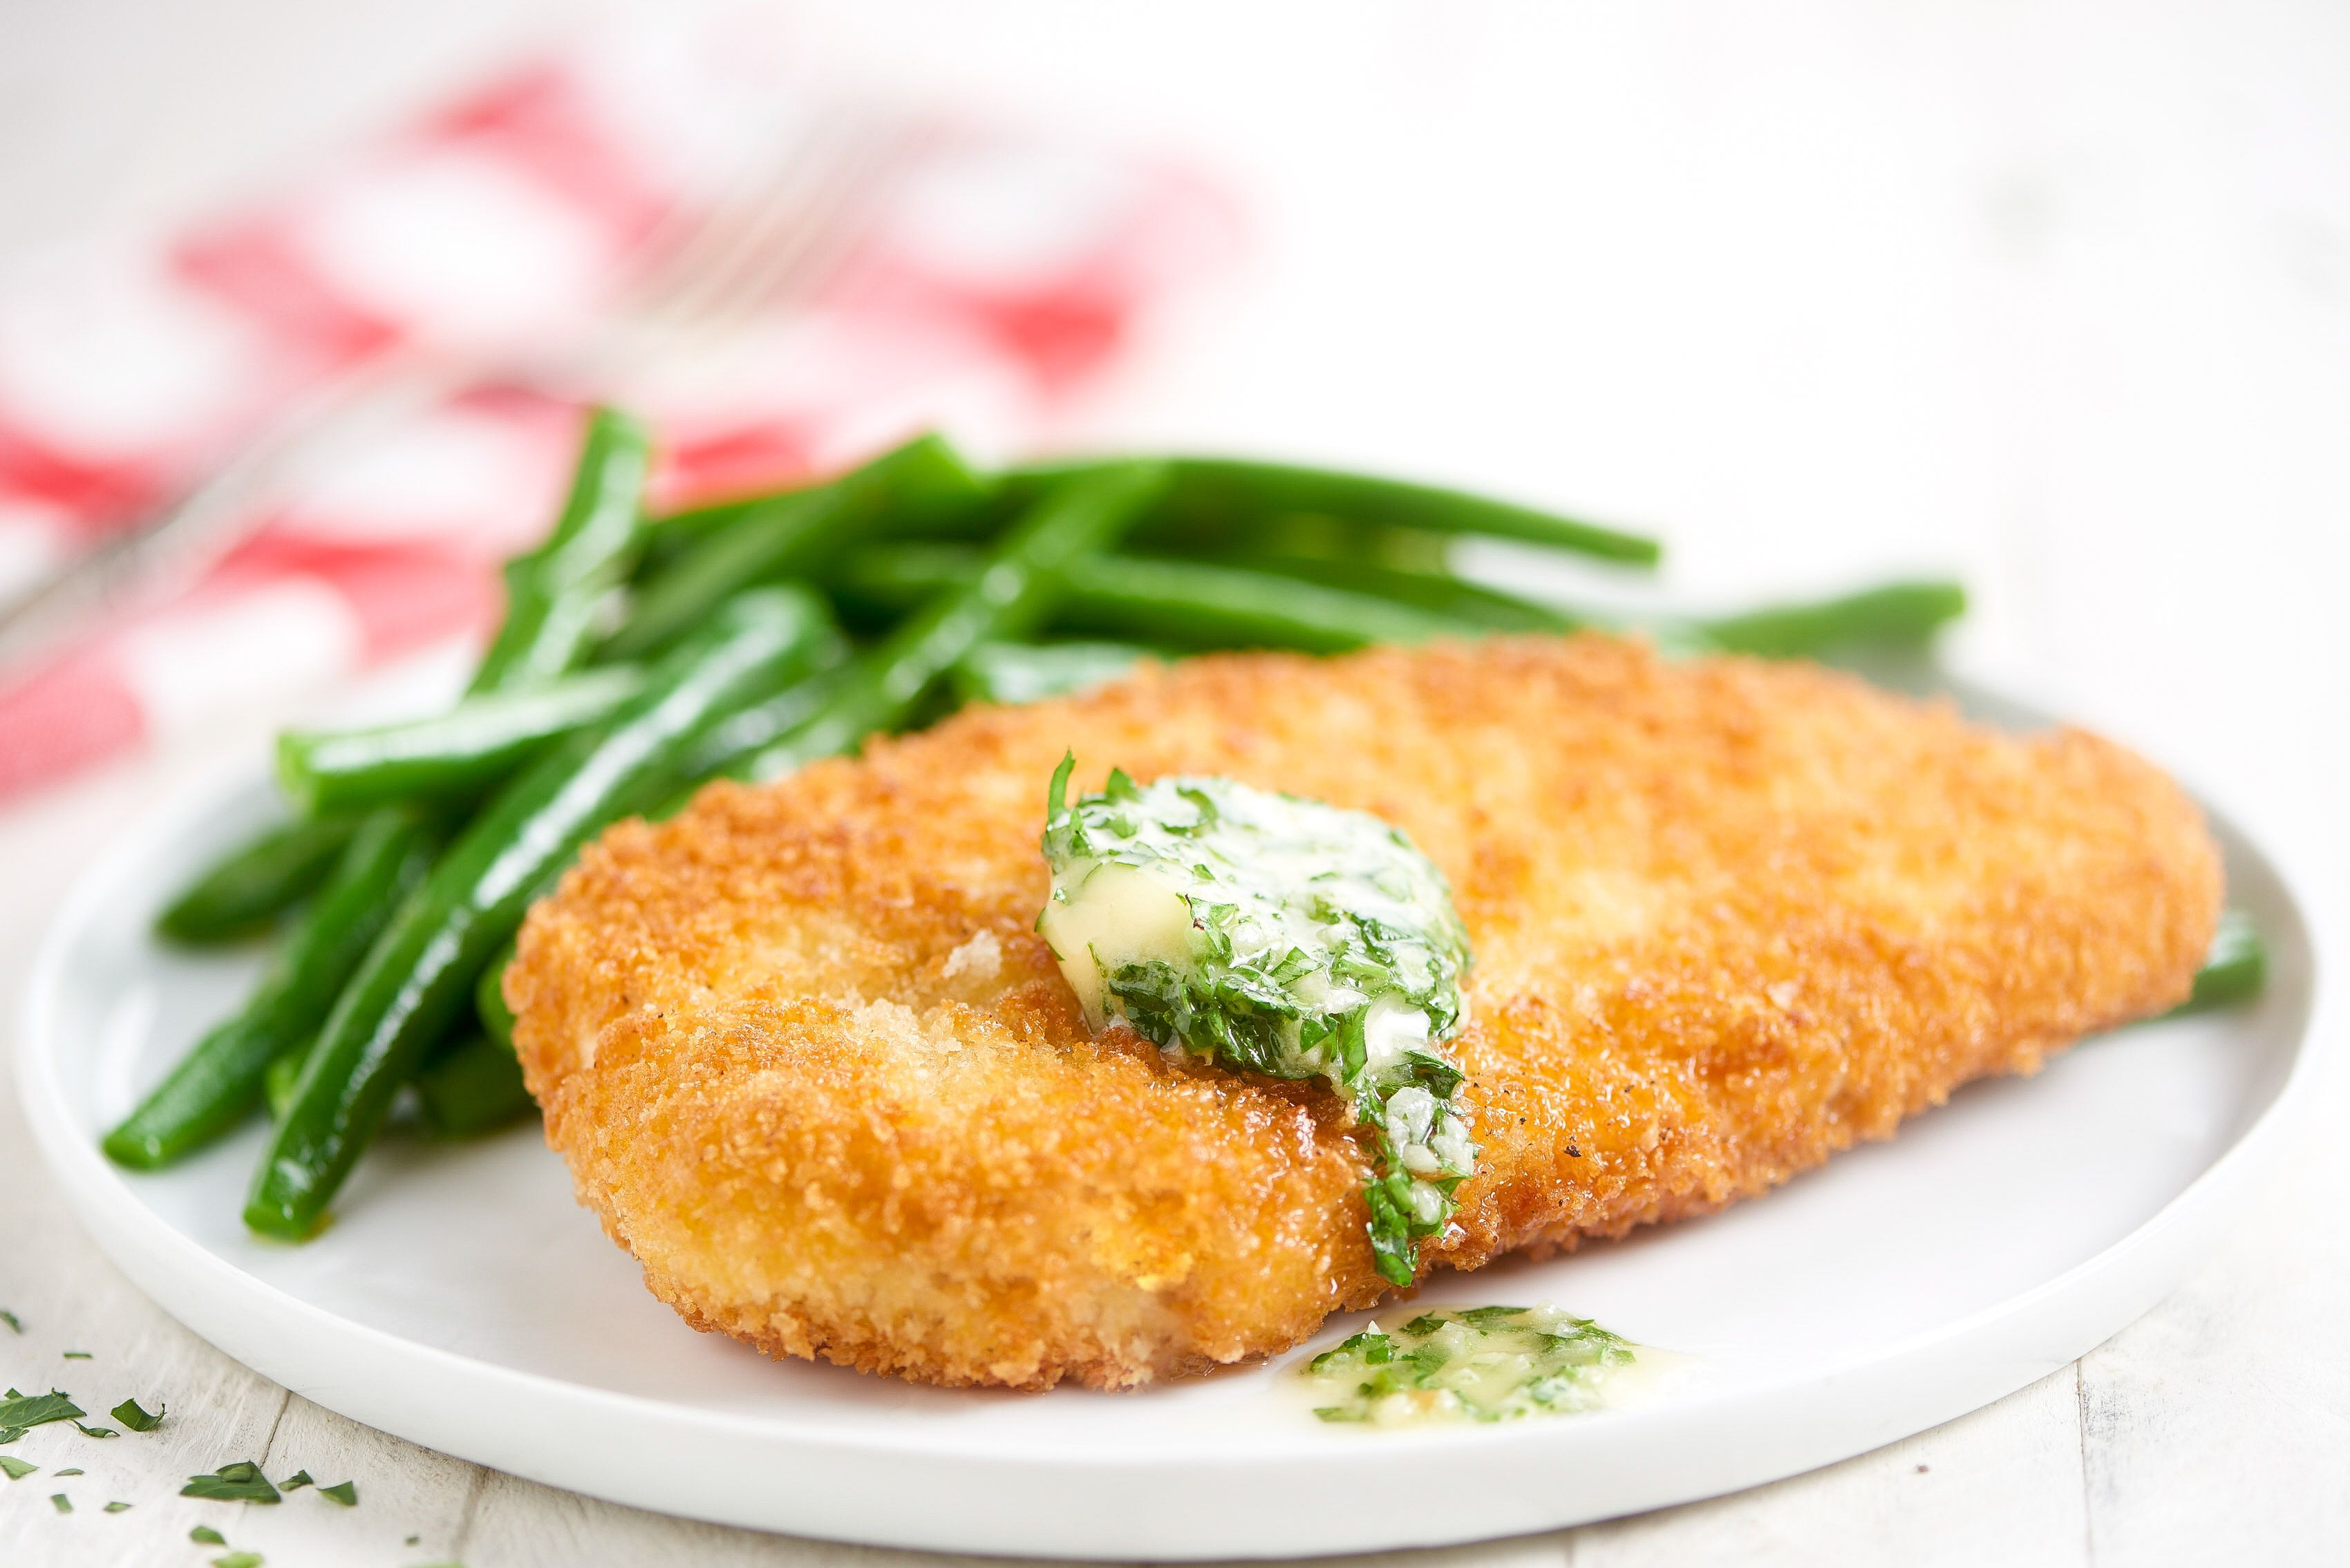 Chicken Kiev with parsleygarlic butter and green beans